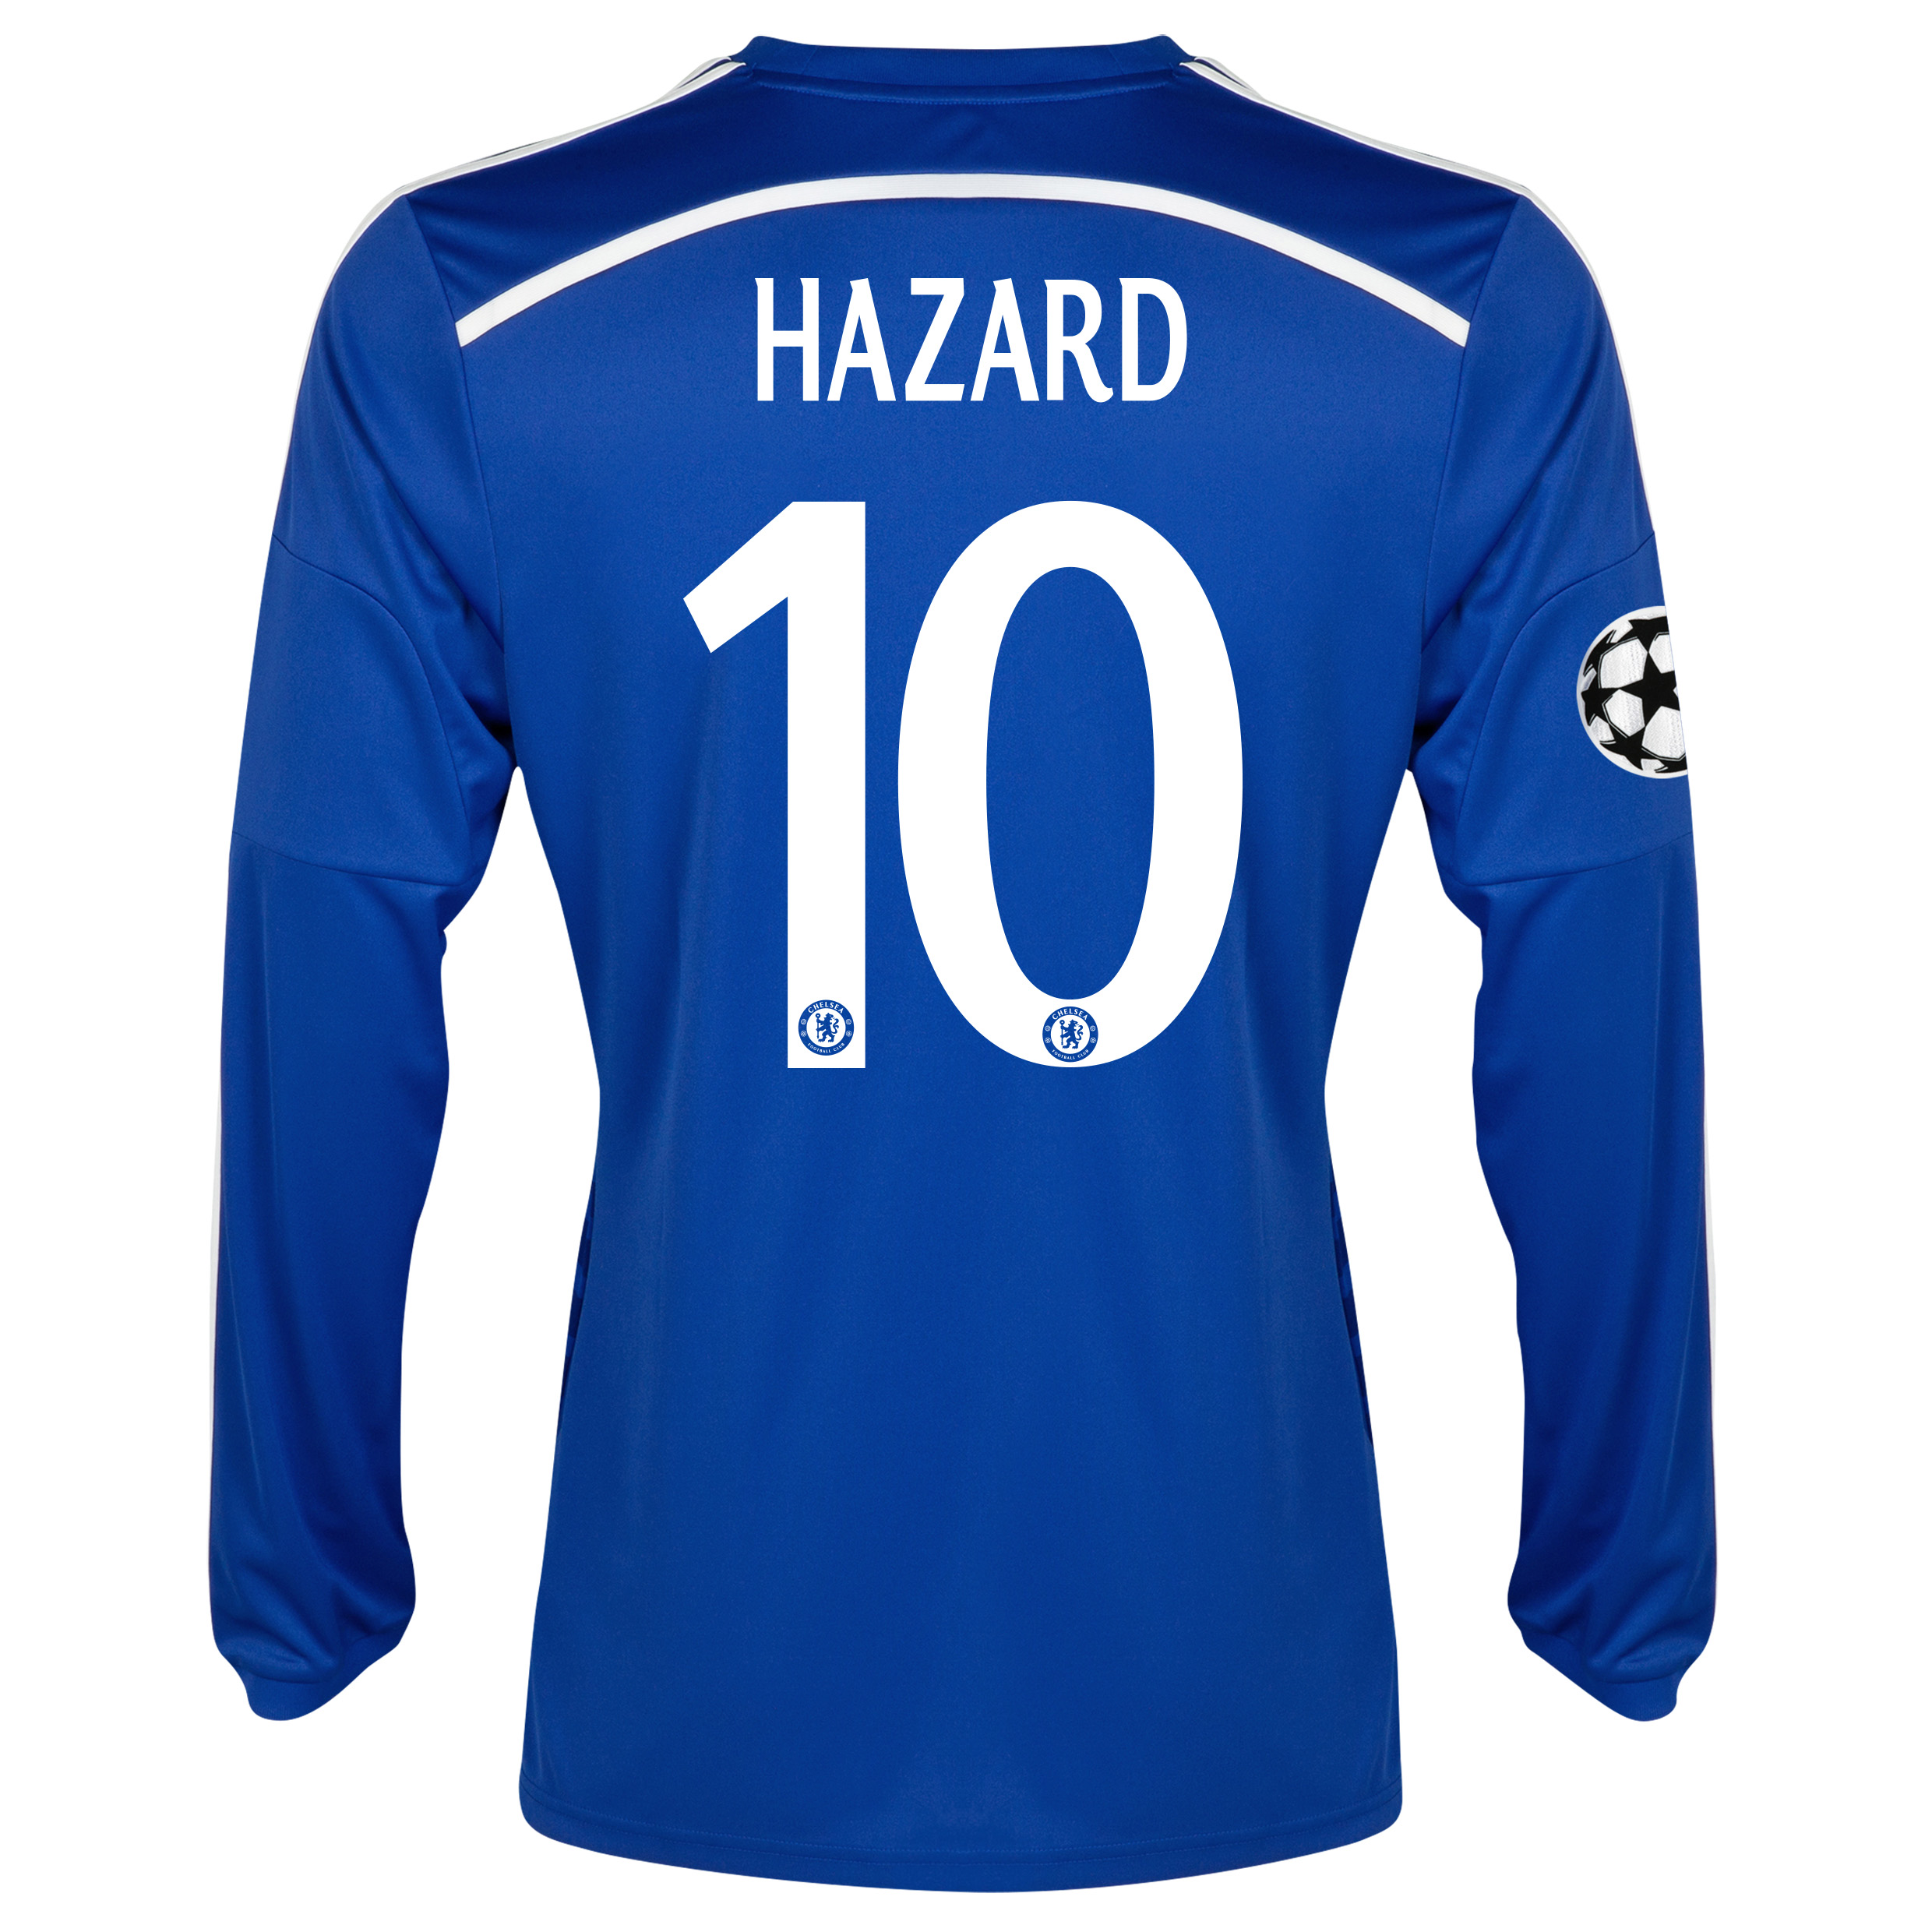 Chelsea UEFA Champions League Home Shirt 2014/15 - Long Sleeve Blue with Hazard 10 printing